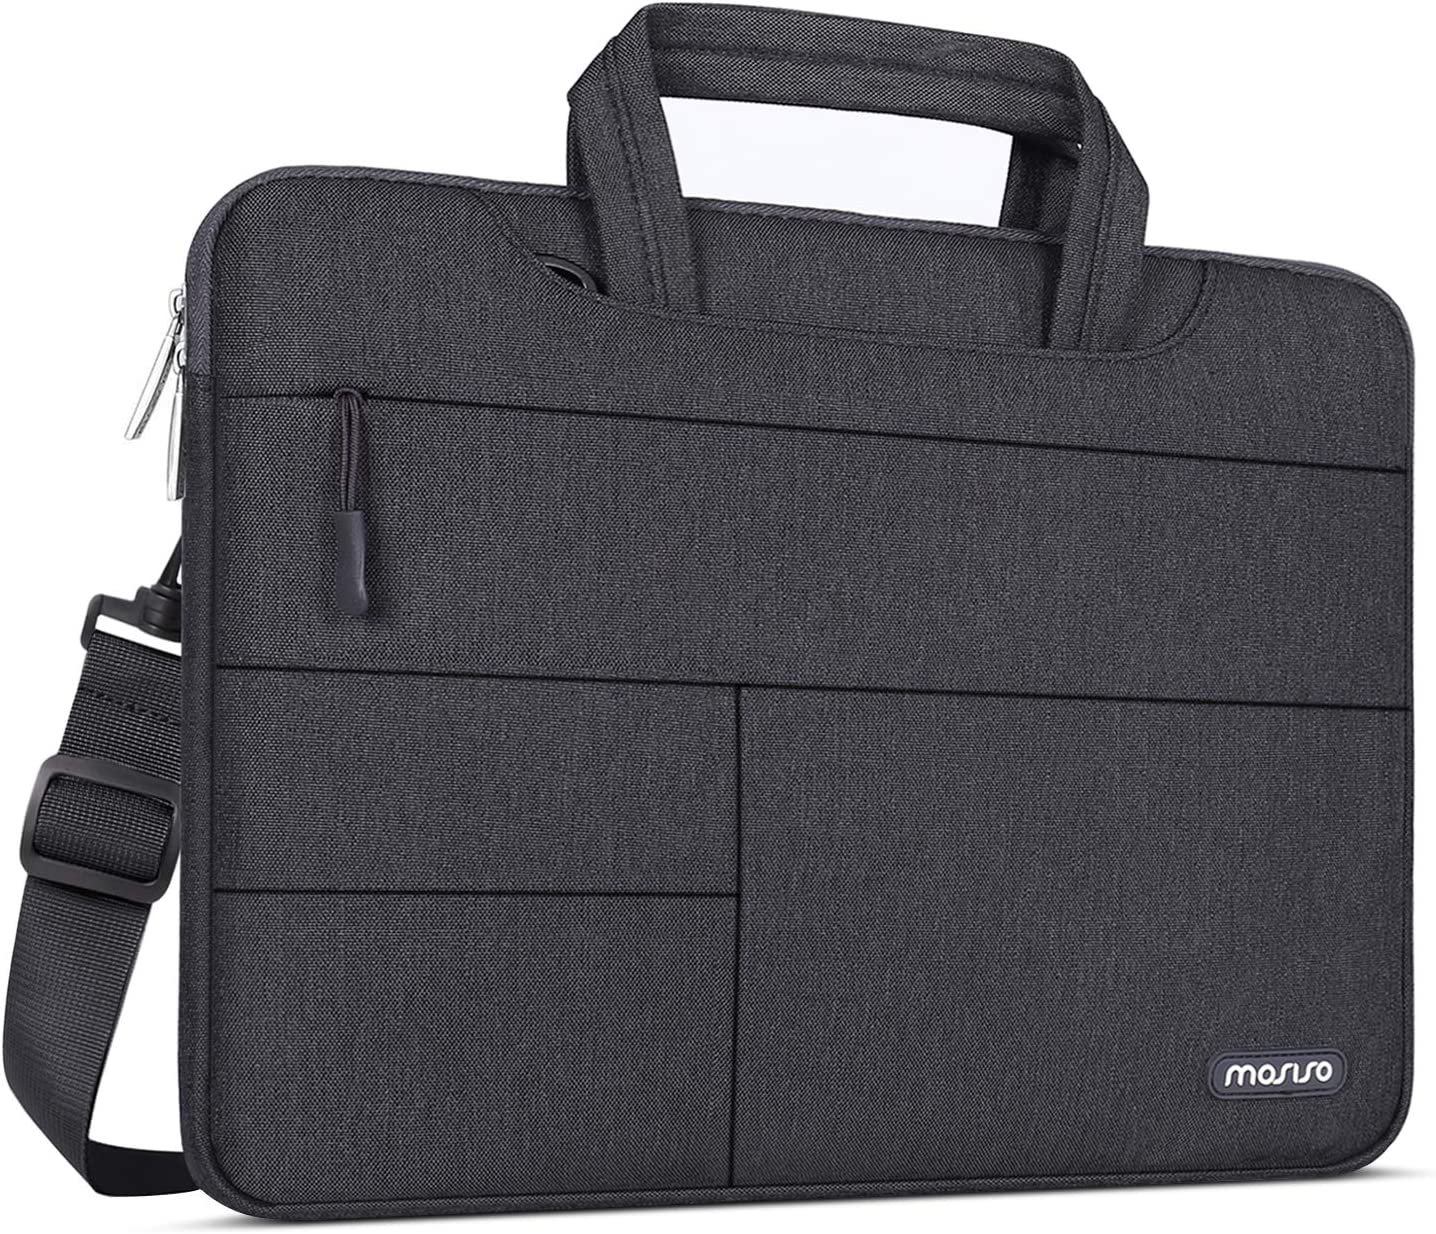 MOSISO Laptop Shoulder Bag Compatible with 13-13.3 inch MacBook Pro, MacBook Air, Notebook Computer, Polyester Briefcase Sleeve with Front Storage Pockets, Space Gray